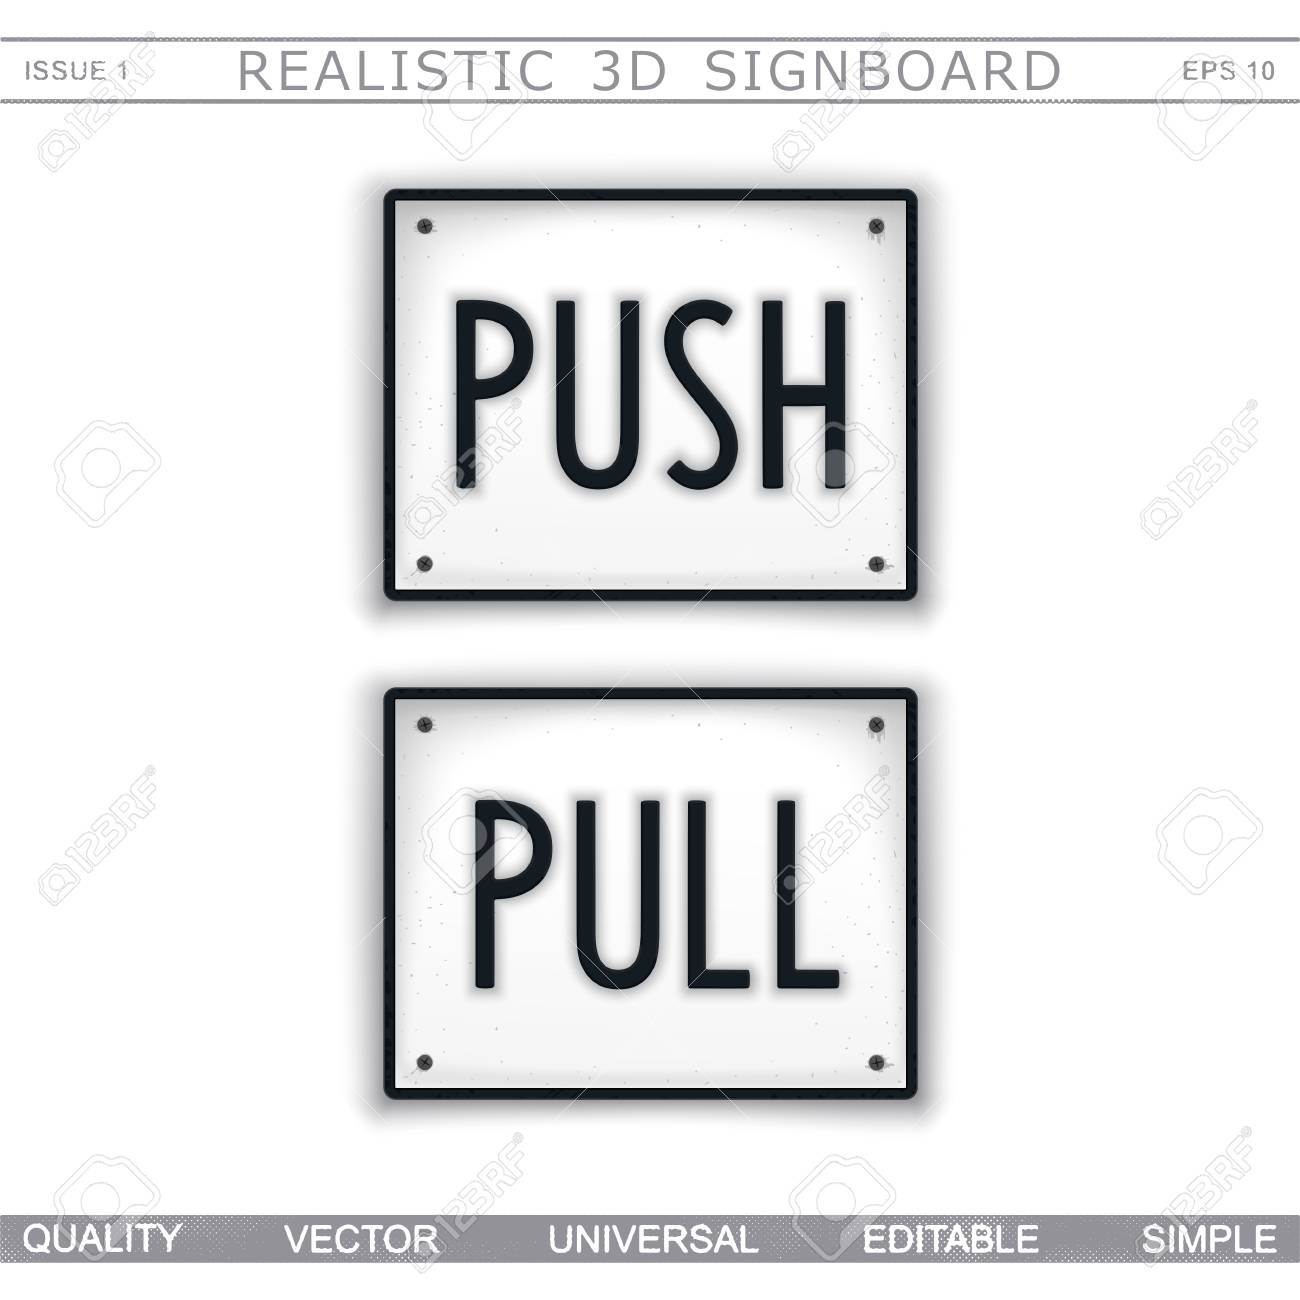 Push pull information stylized signboard top view vector design elements stock vector